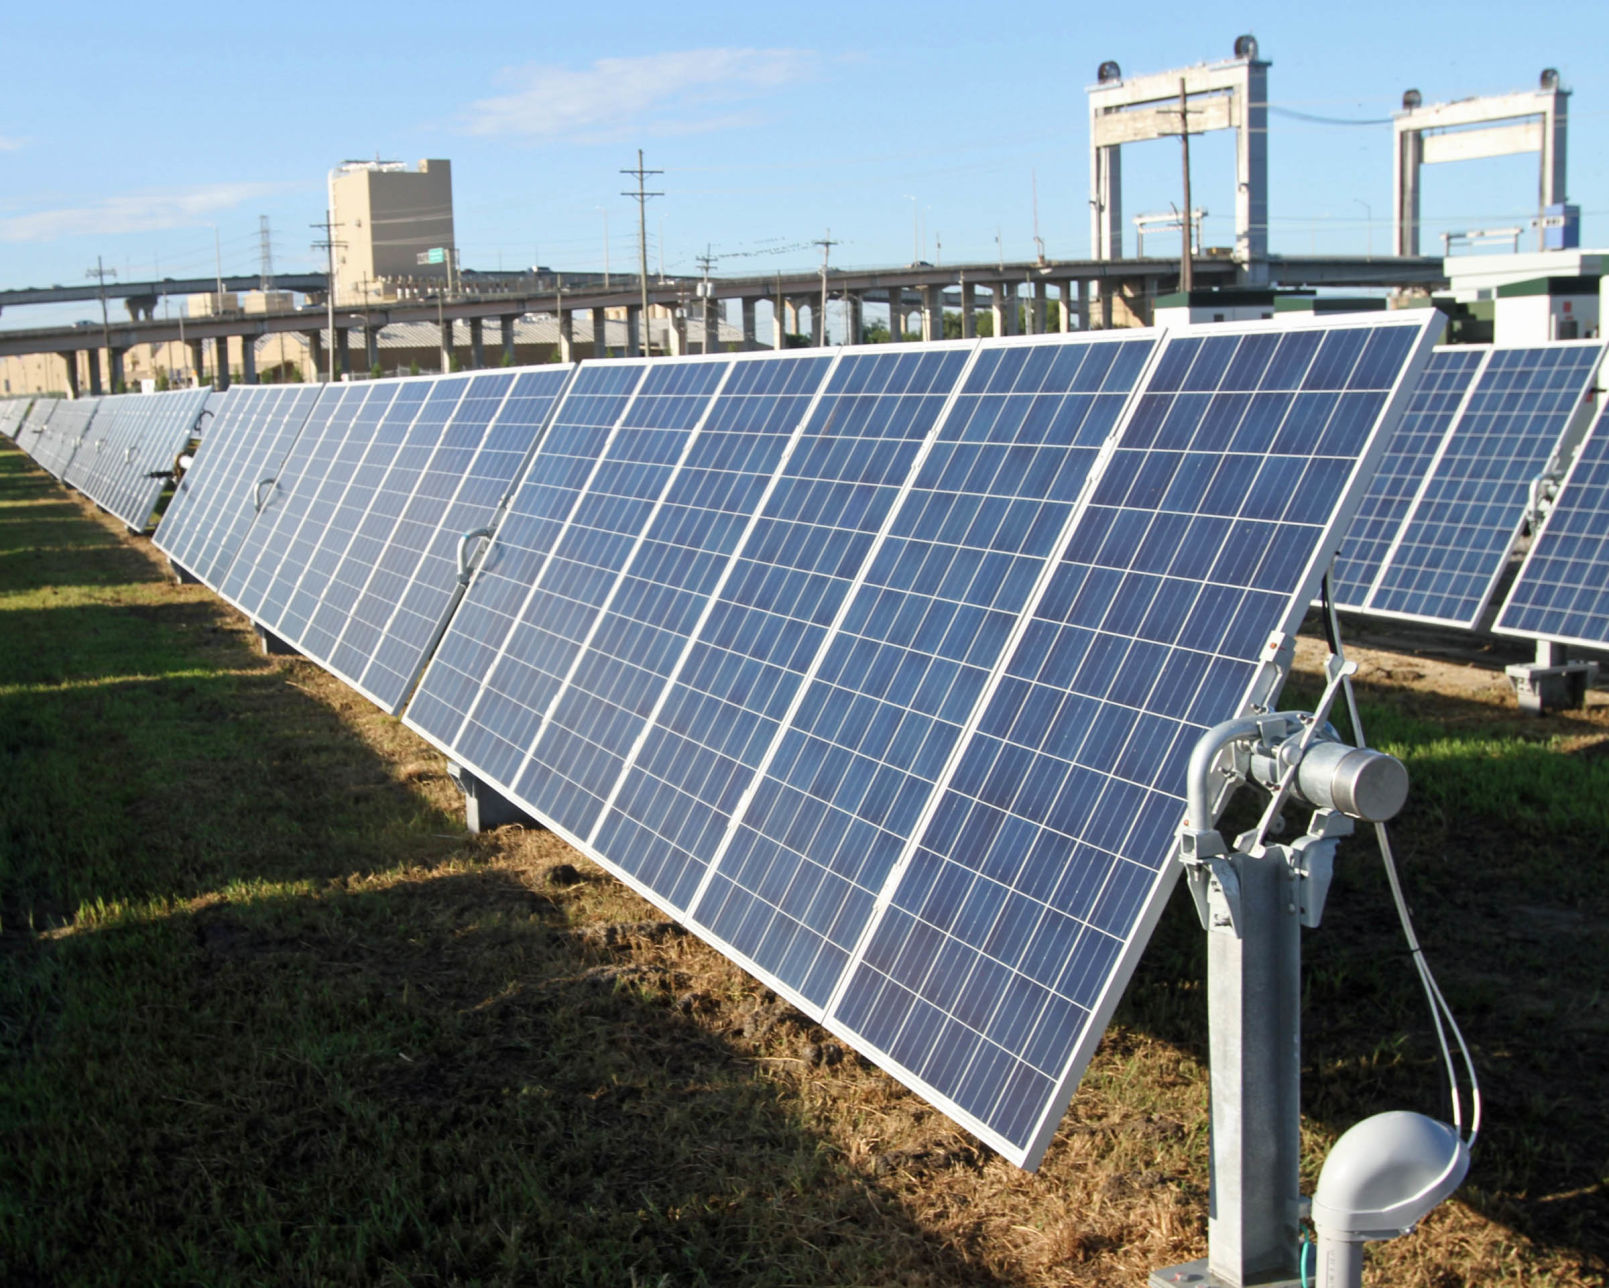 Regulators OK new solar panel rules that change electricity price; some  call it a death knell to industry   State Politics   theadvocate.com